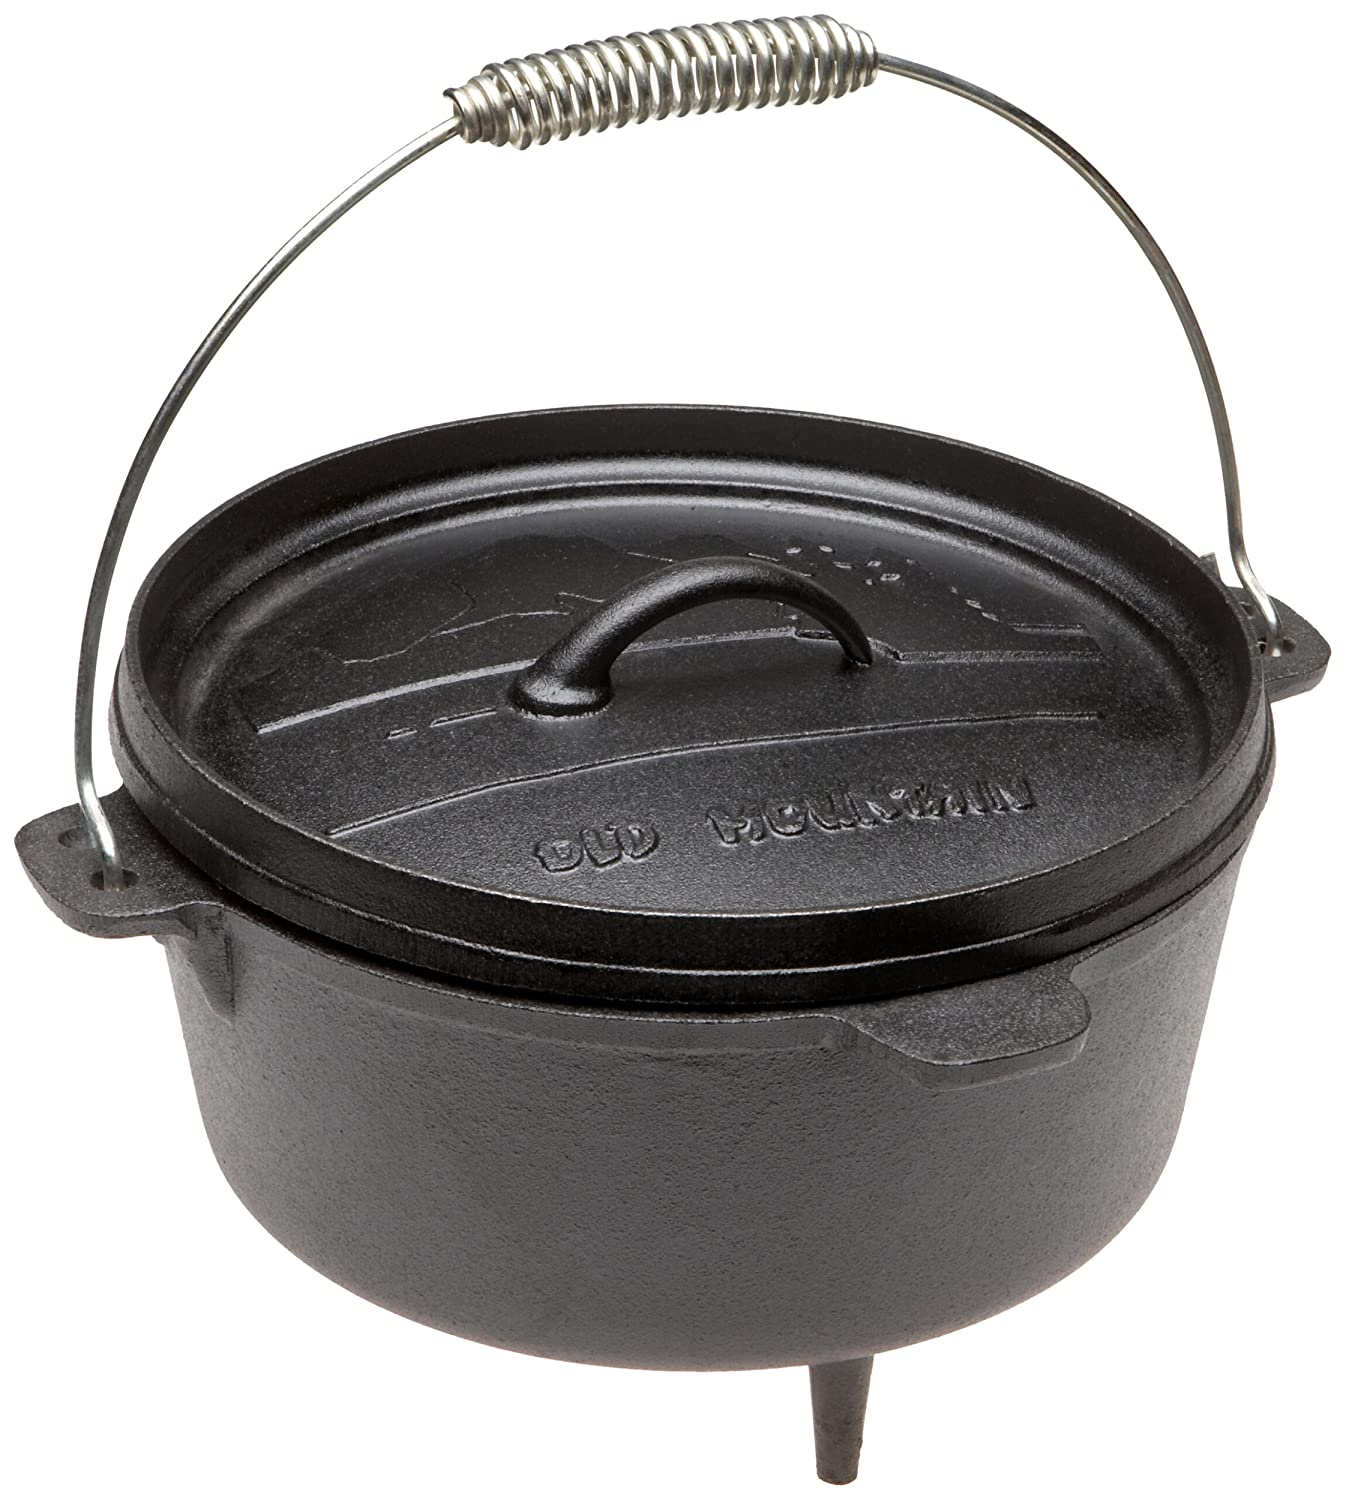 Old Mountain Pre Seasoned 10114 4 Quart Camp Oven with Flanged Lid, Feet and Spiral Bail Handle